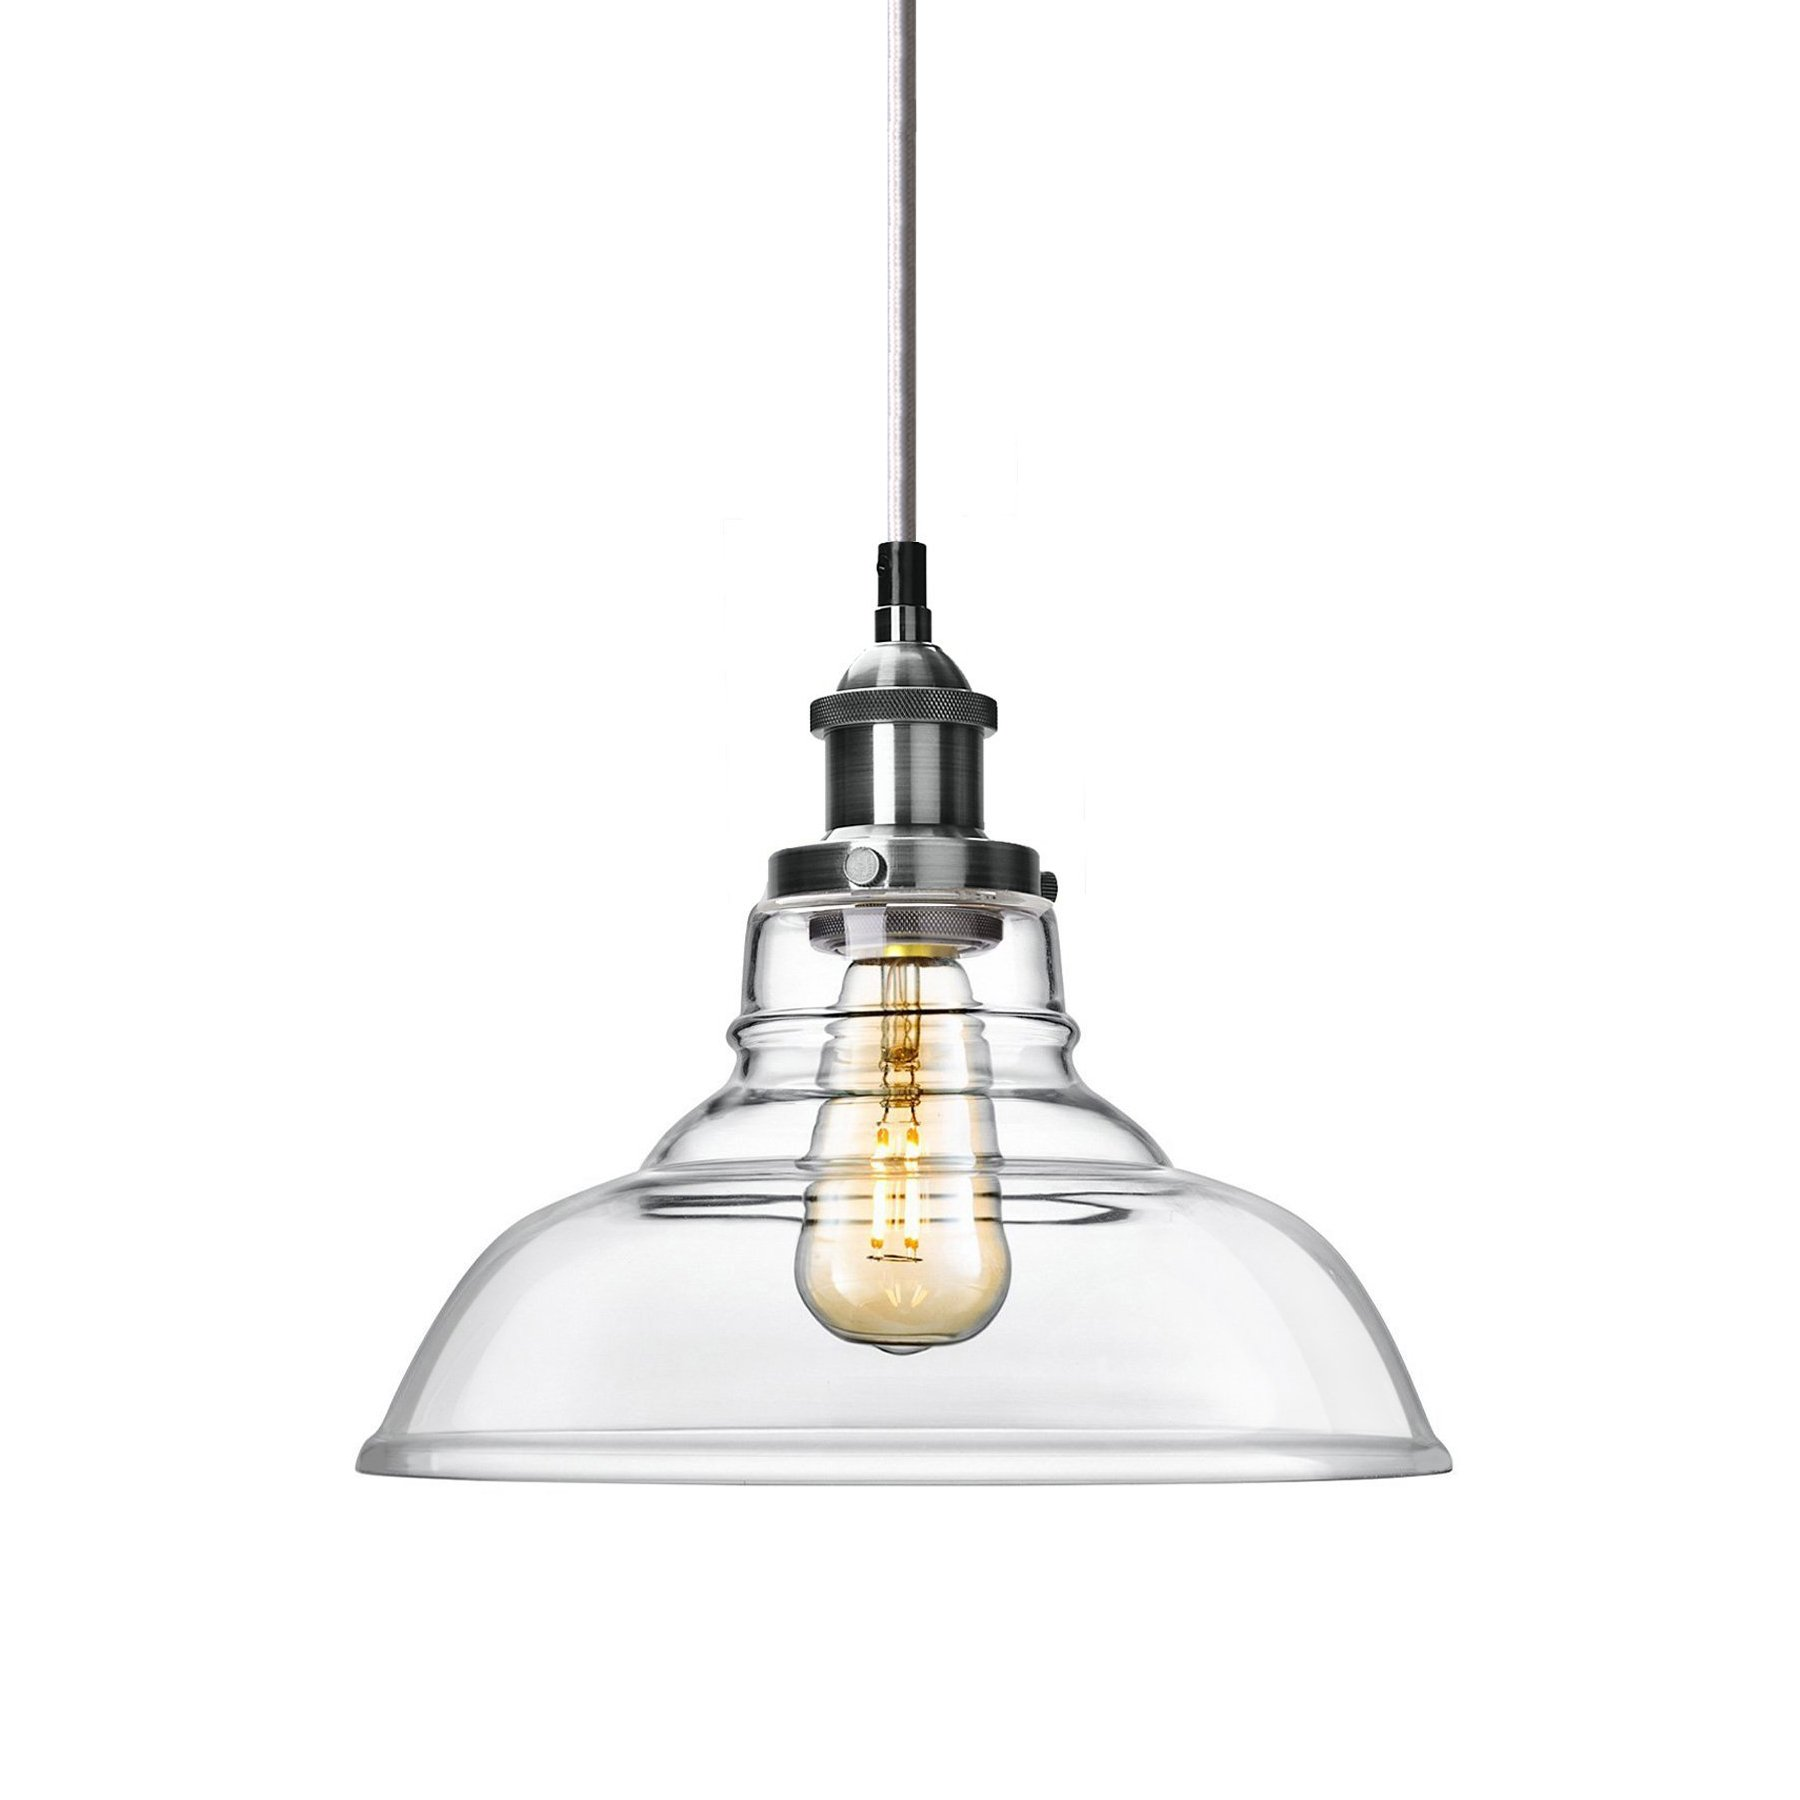 Antique Brushed Nickel Industrial Glass Hanging Pendant Light - with Clear Glass Shade - Edison Bulb Style - Overhanging Mini Lighting Drop Pendant Fixture (Glass Bell)